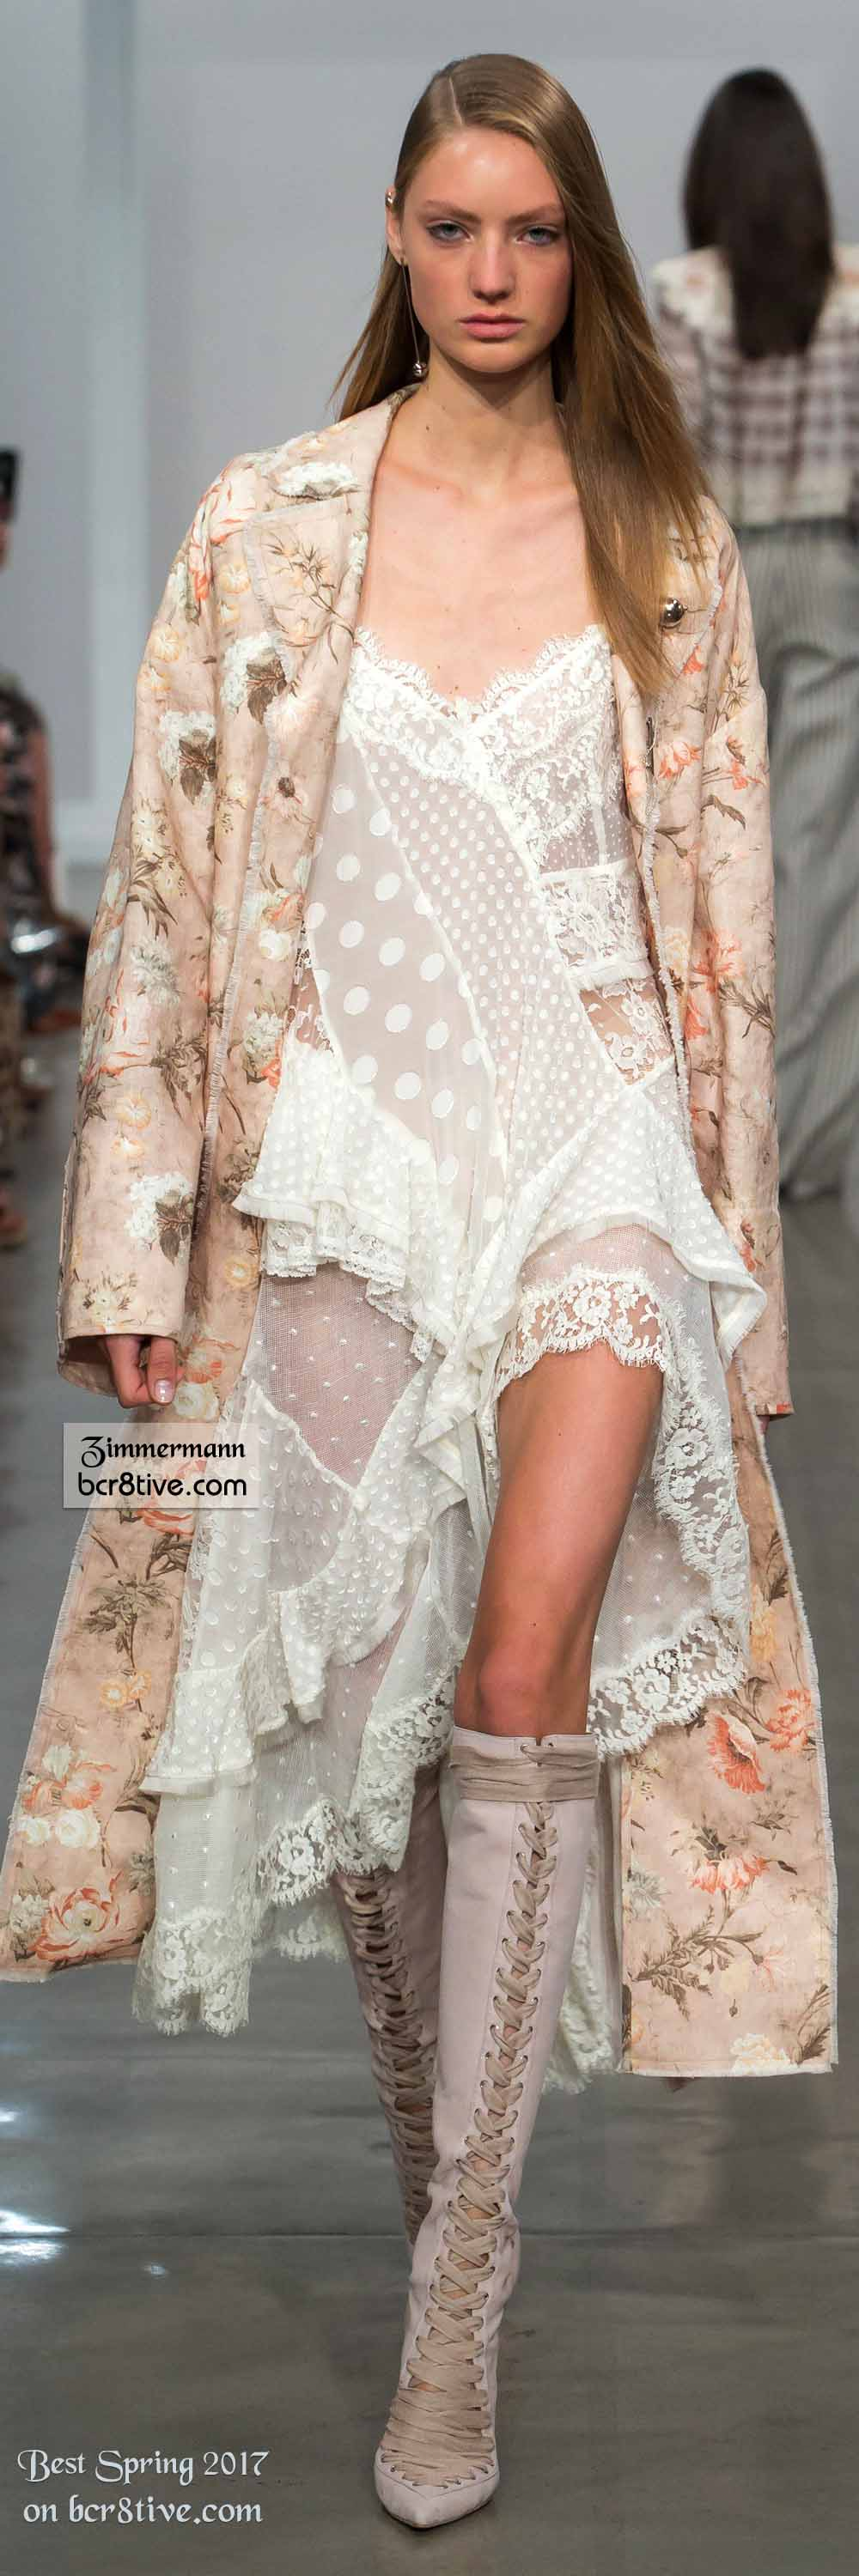 Zimmermann - The Best Looks from New York Fashion Week Spring 2017